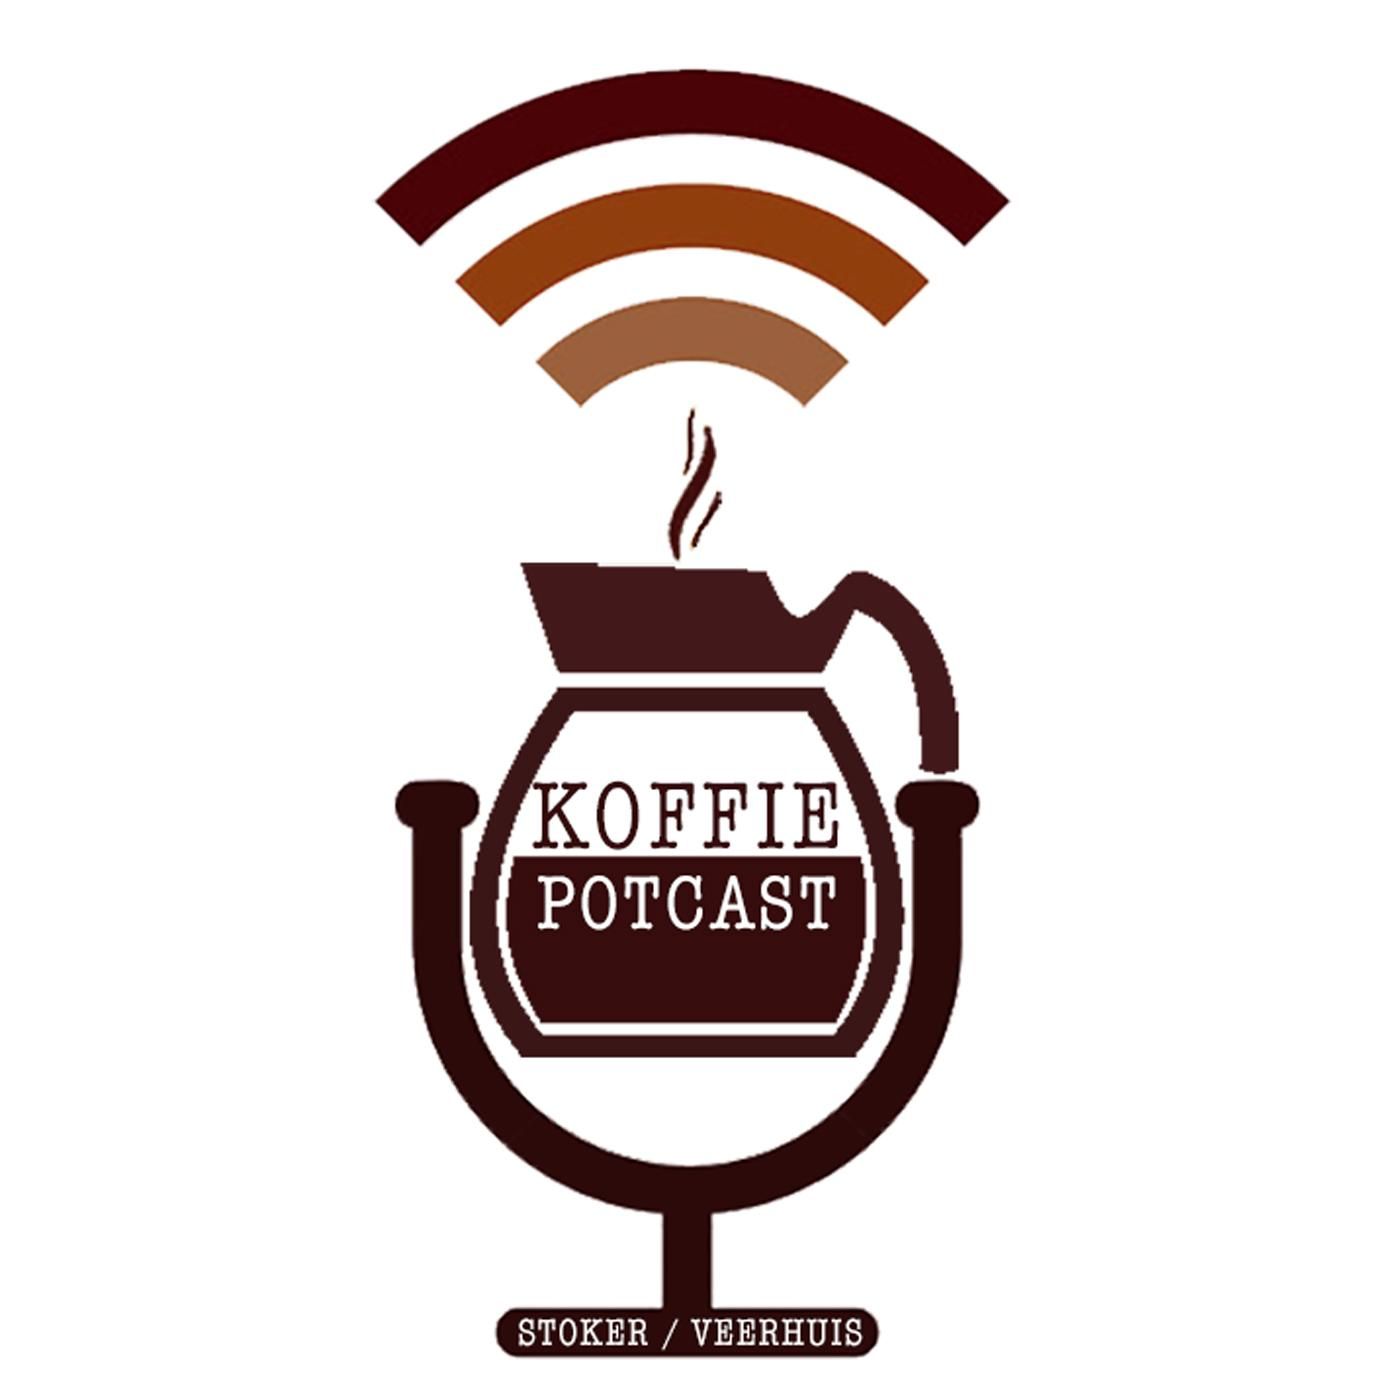 Cover Image Koffiepotcast